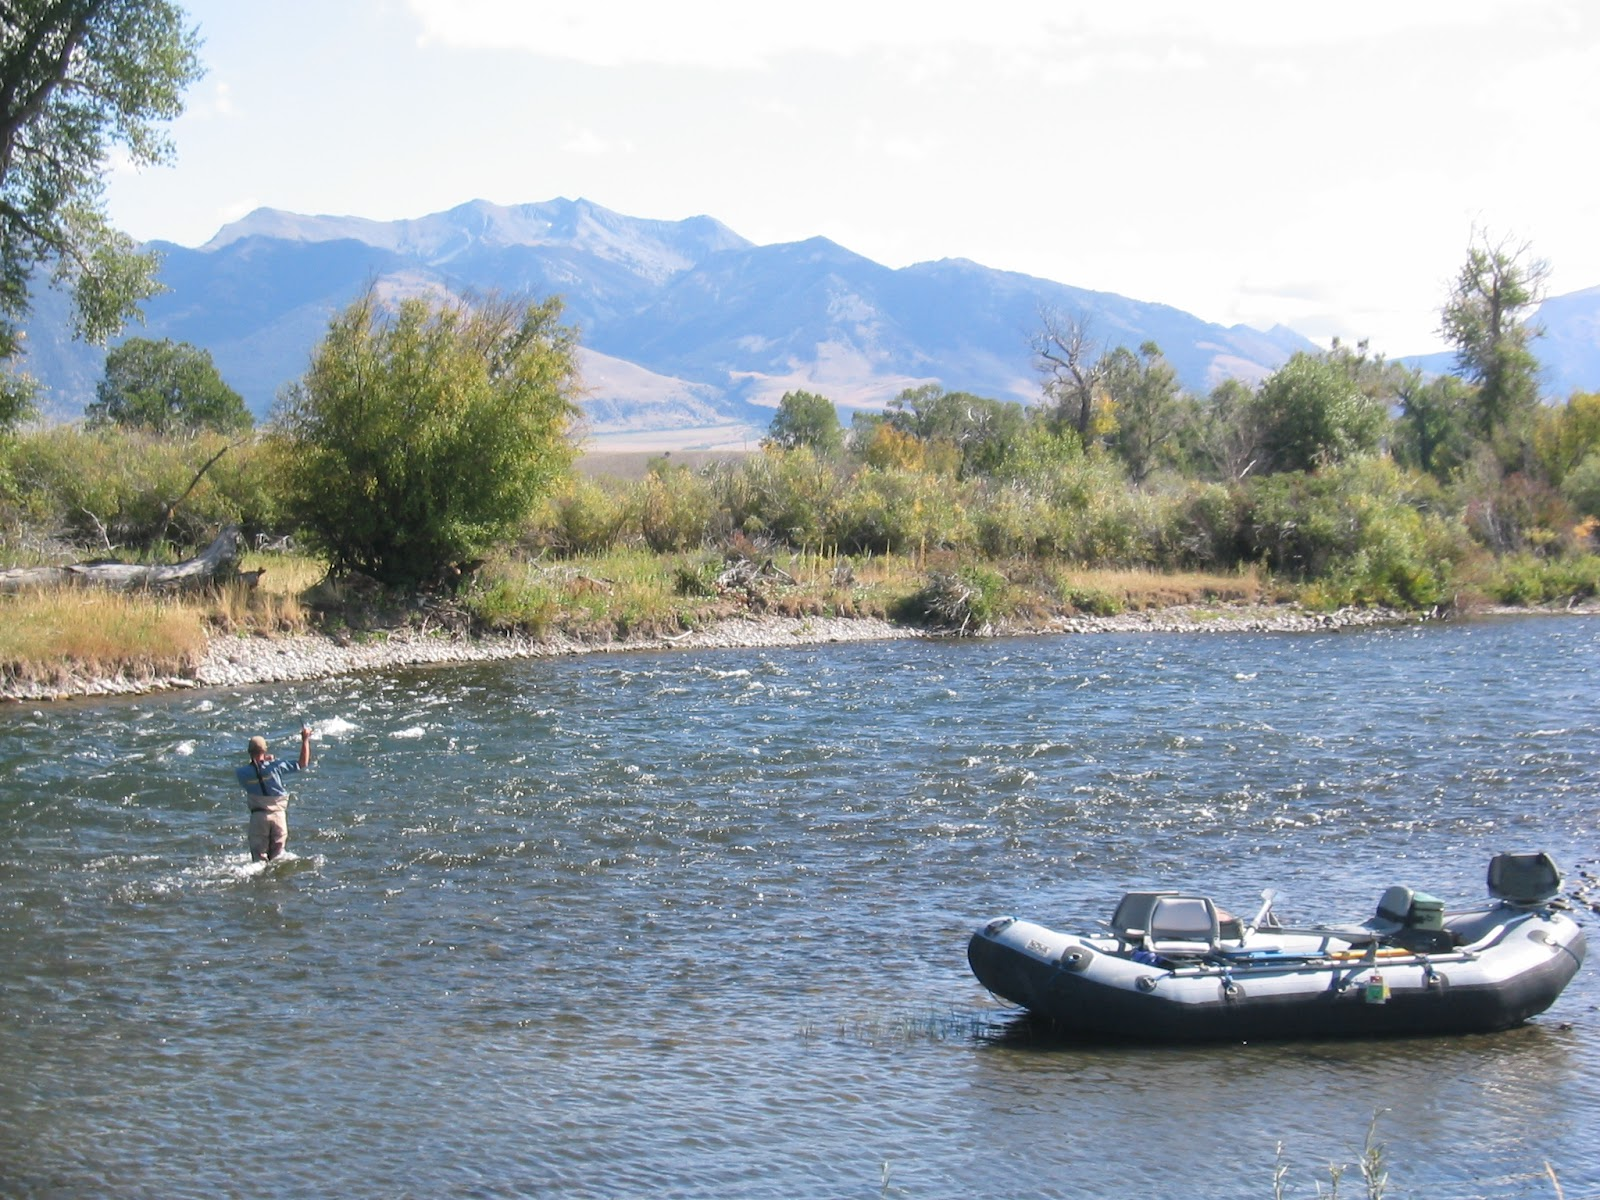 D h fly fishing trips to montana delamere hopkins for Montana fishing trips